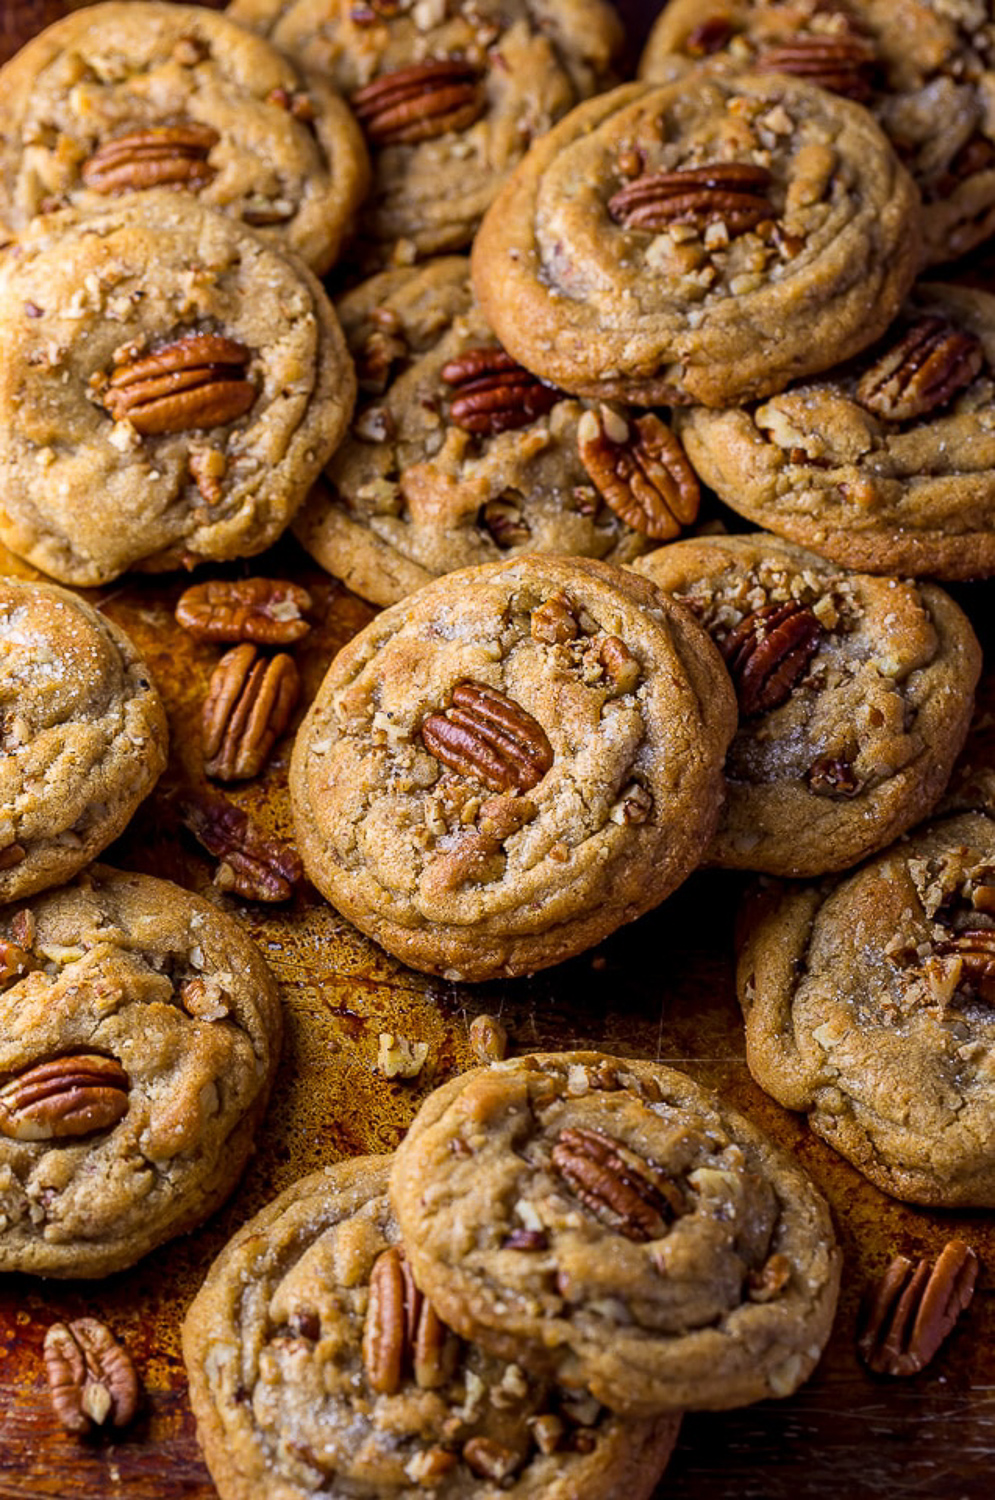 Top 10 Best Cookies for Homemade Ice Cream Sandwiches 9 (1 of 1)